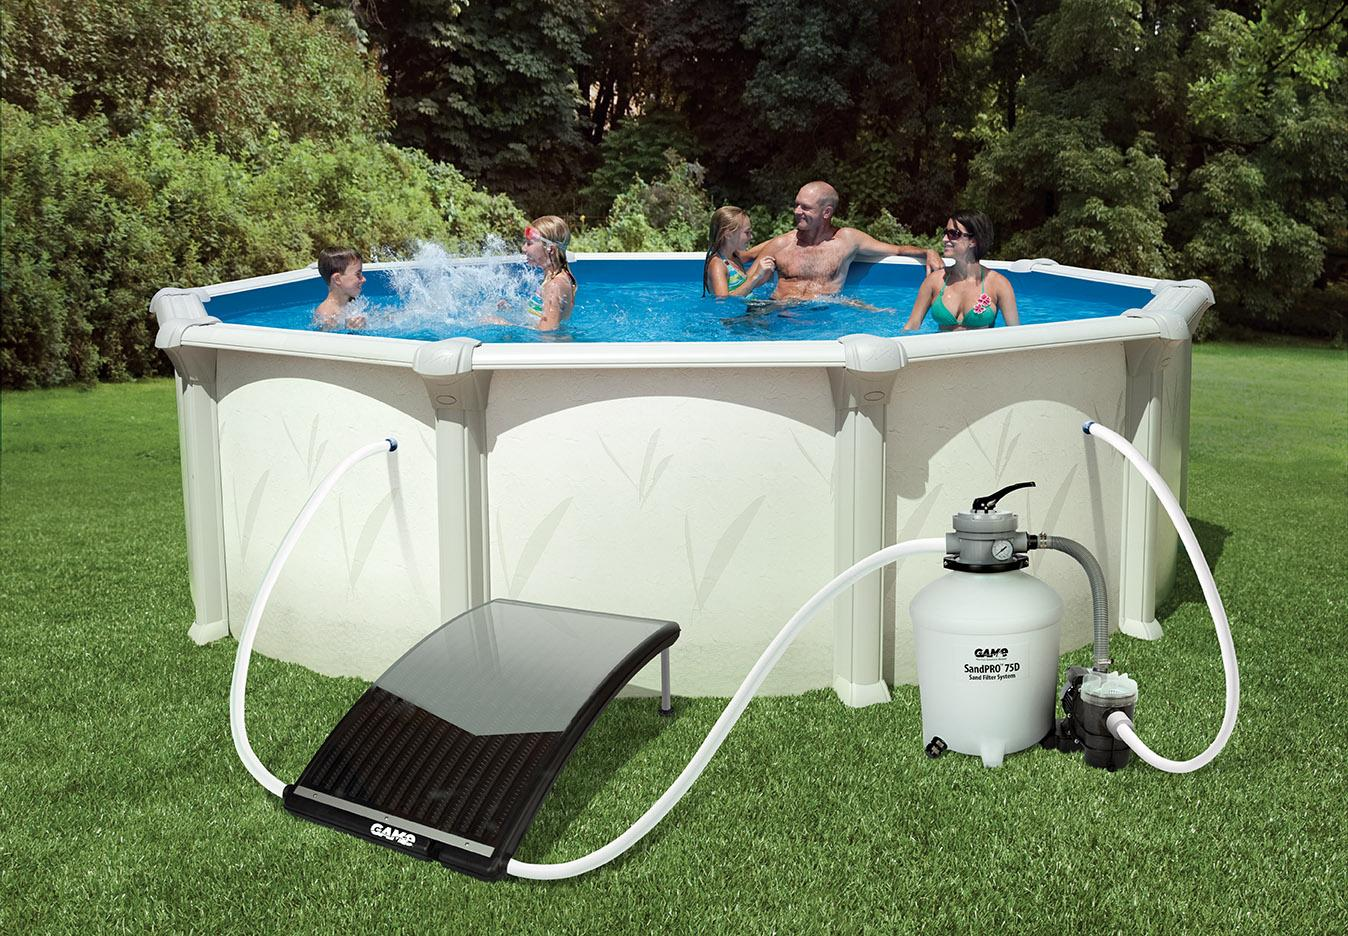 10 Best Above Ground Pool Heaters in 2019 - Reviews